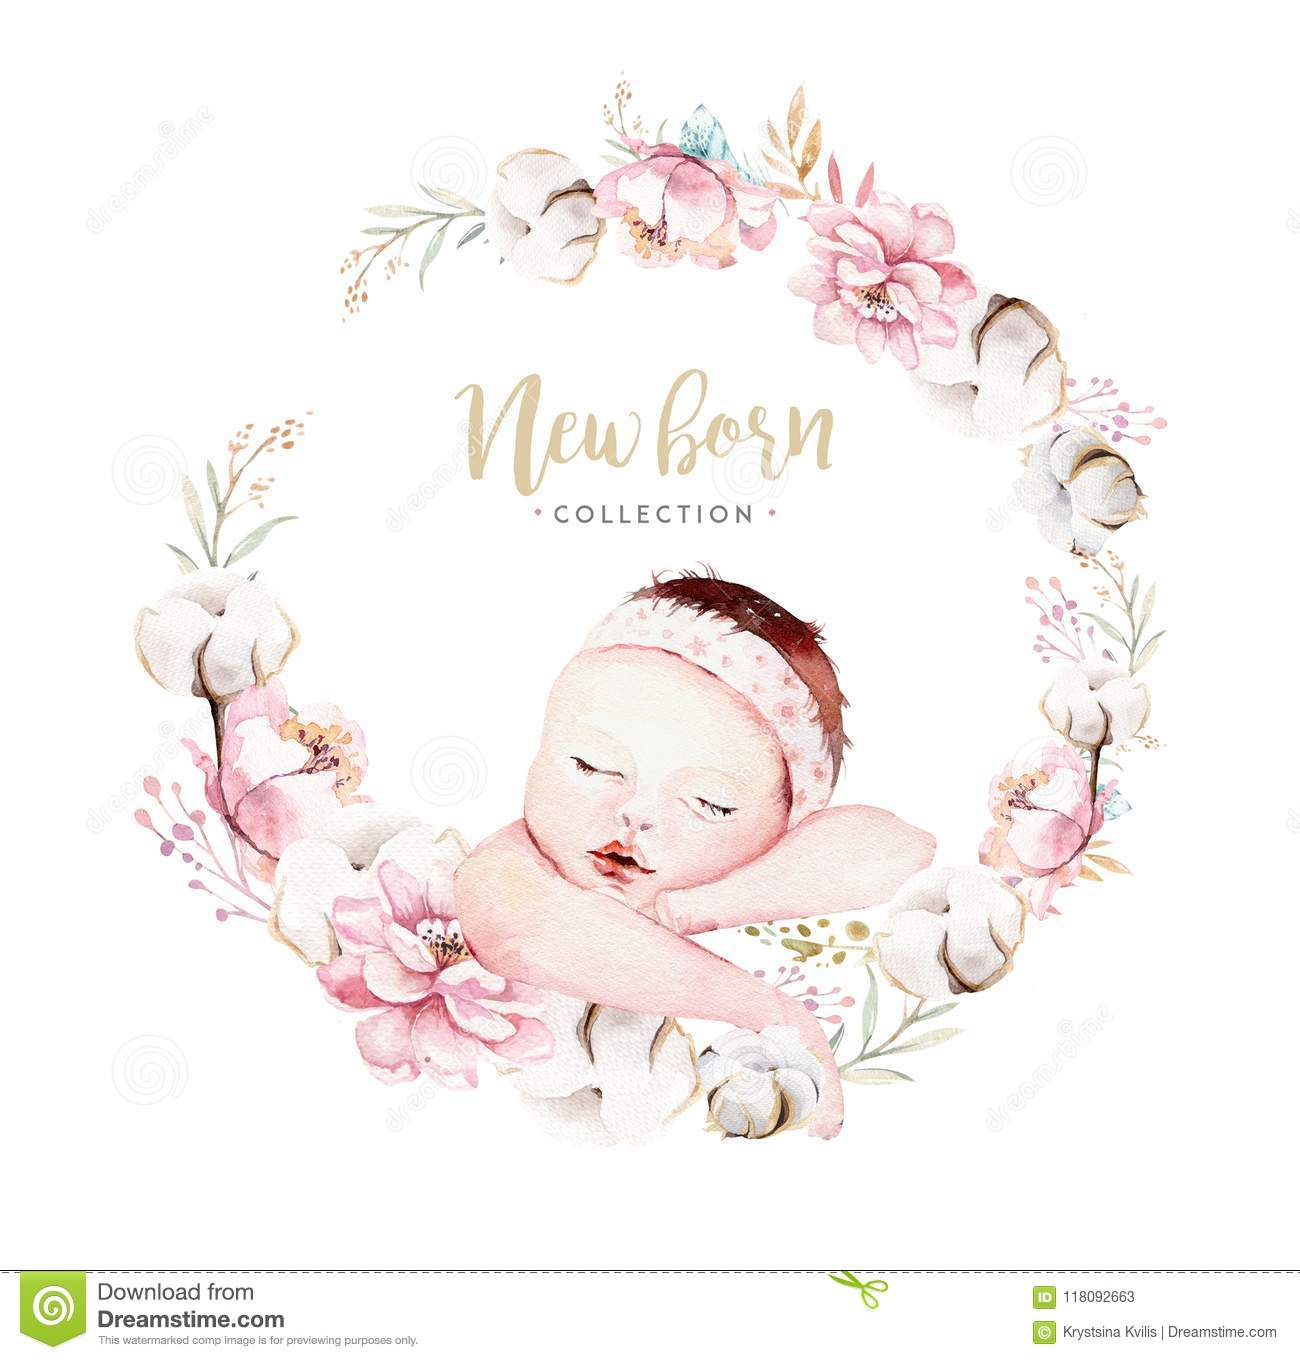 Cute newborn watercolor baby. New born child illustration girl and boy painting. Baby shower isolated birthday painting